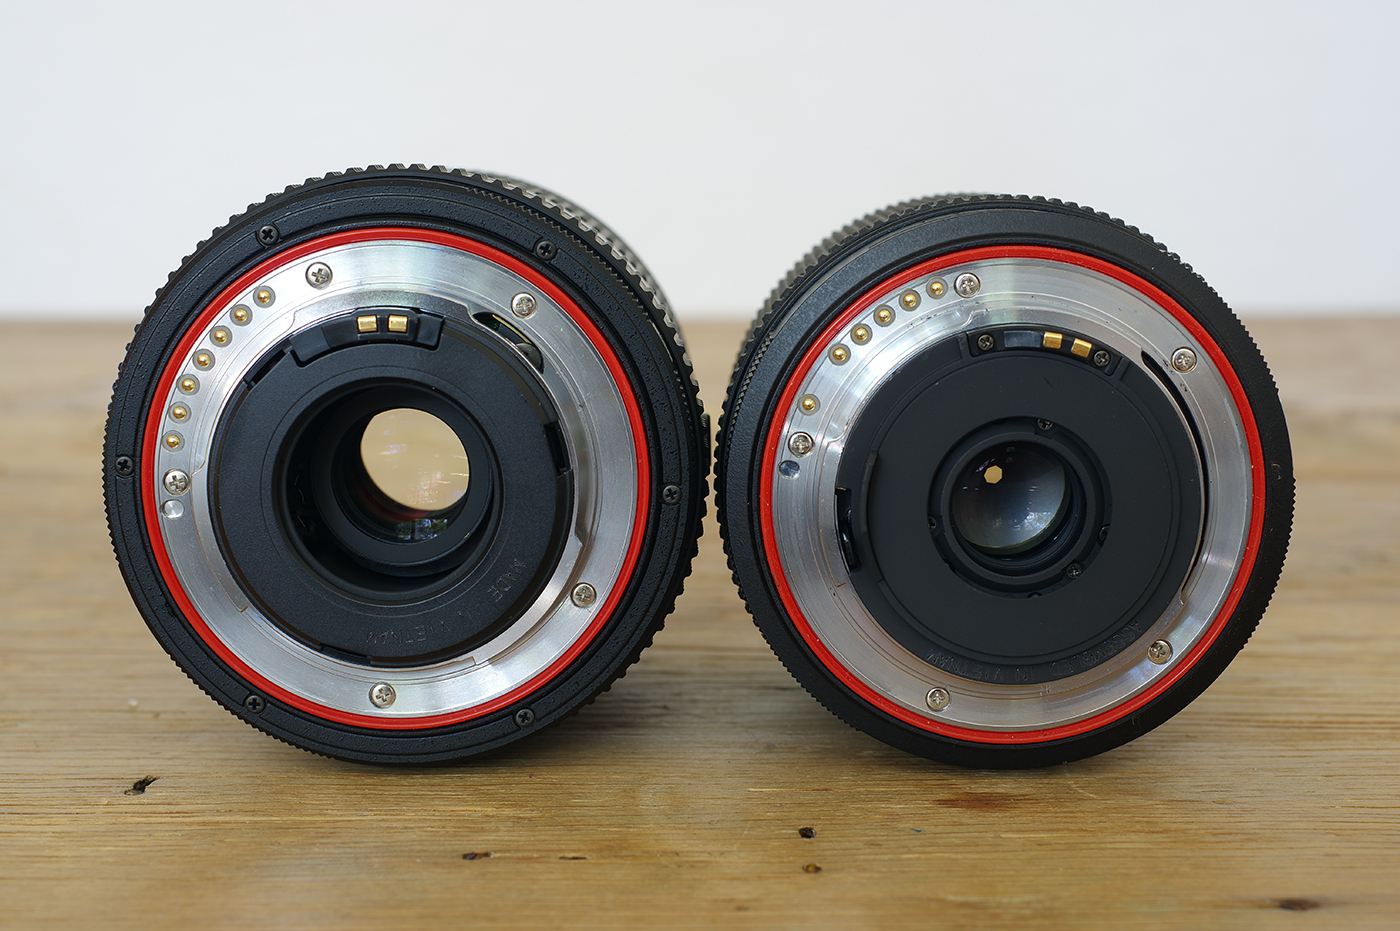 The new KAF4 mount has an extra pin, compared to the KAF3 mount on the 18-135mm WR.